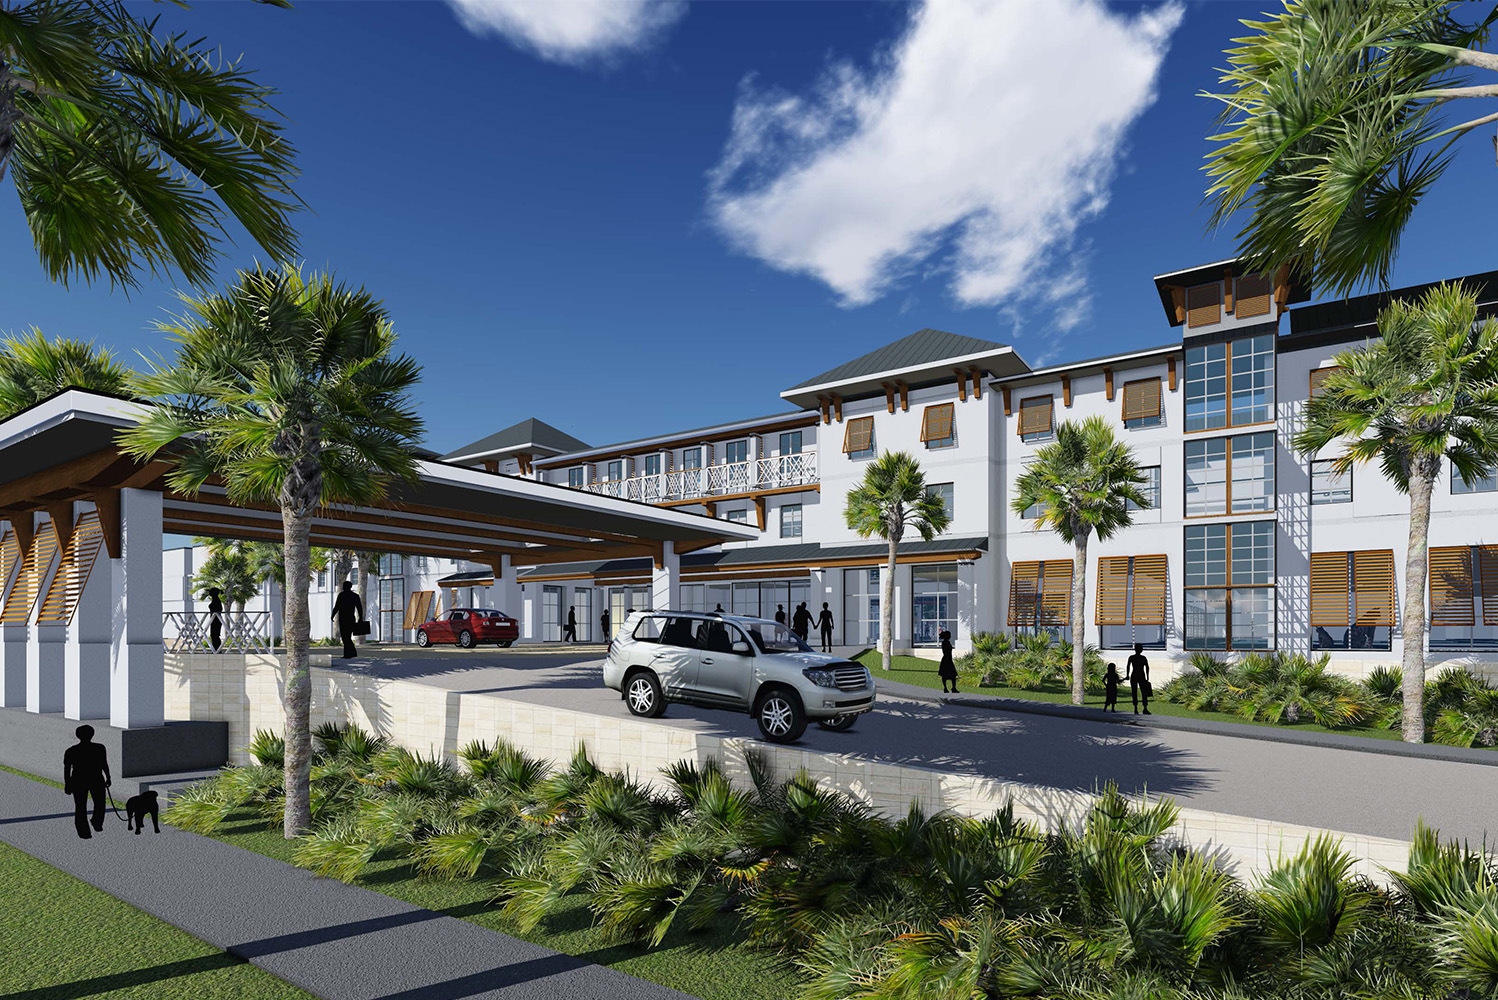 Key International topped off Phase I of the construction of its Embassy Suites by Hilton St. Augustine Beach Oceanfront Resort in Florida.